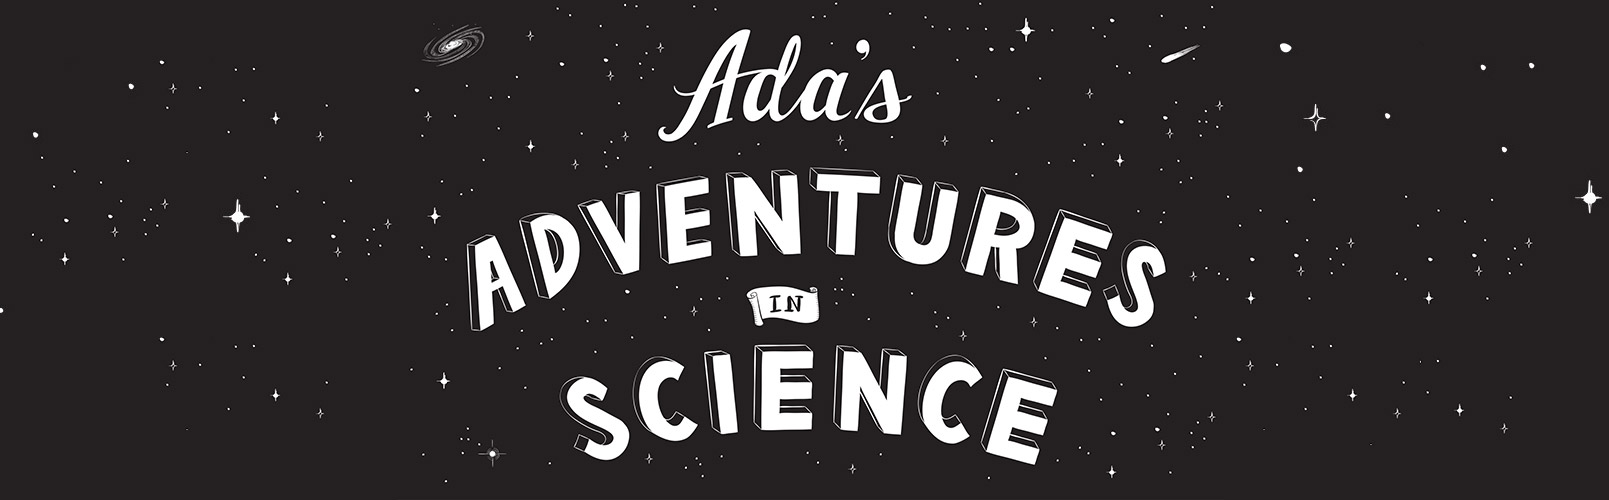 Ada's Adventures in Science header